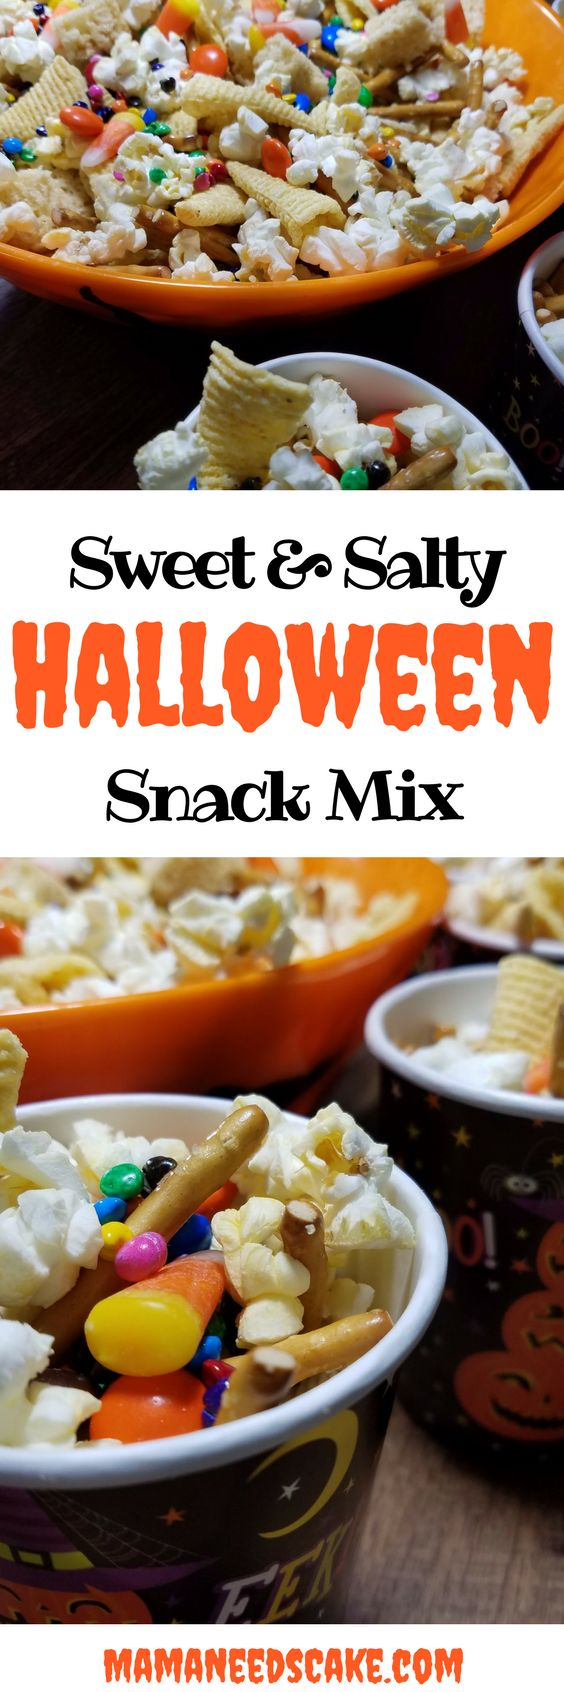 Sweet & Salty Halloween Snack Mix Every year my daughter has a Halloween party at school and every year I volunteer to bring either cookies or cupcakes.